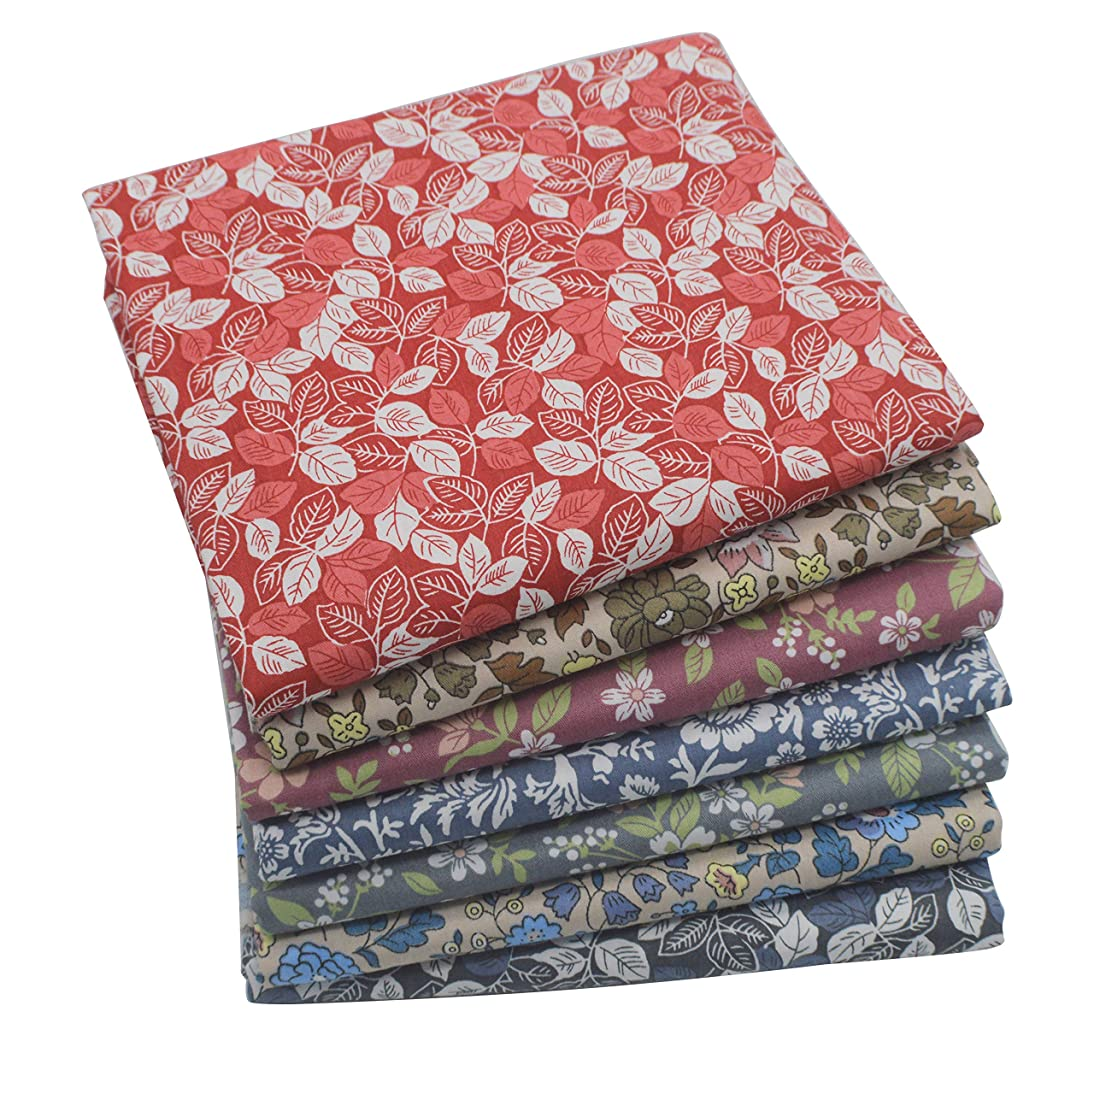 iNee Bloom Fat Quarters Quilting Fabric Bundles, Sewing Quilting Fabric, 18